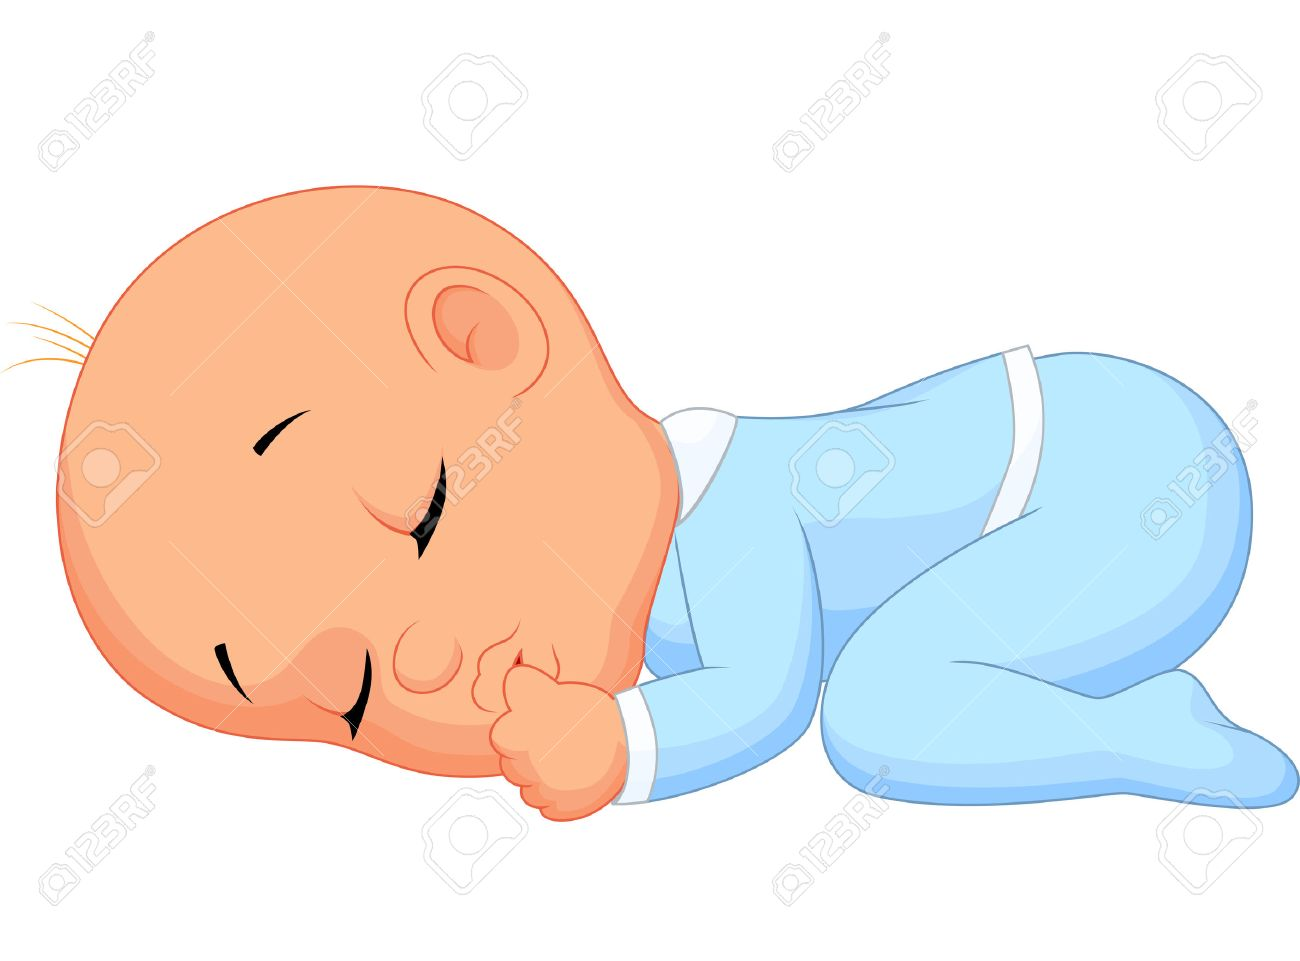 baby boy cartoon sleeping royalty free cliparts vectors and stock rh 123rf com free baby boy cartoon images black baby boy cartoon images